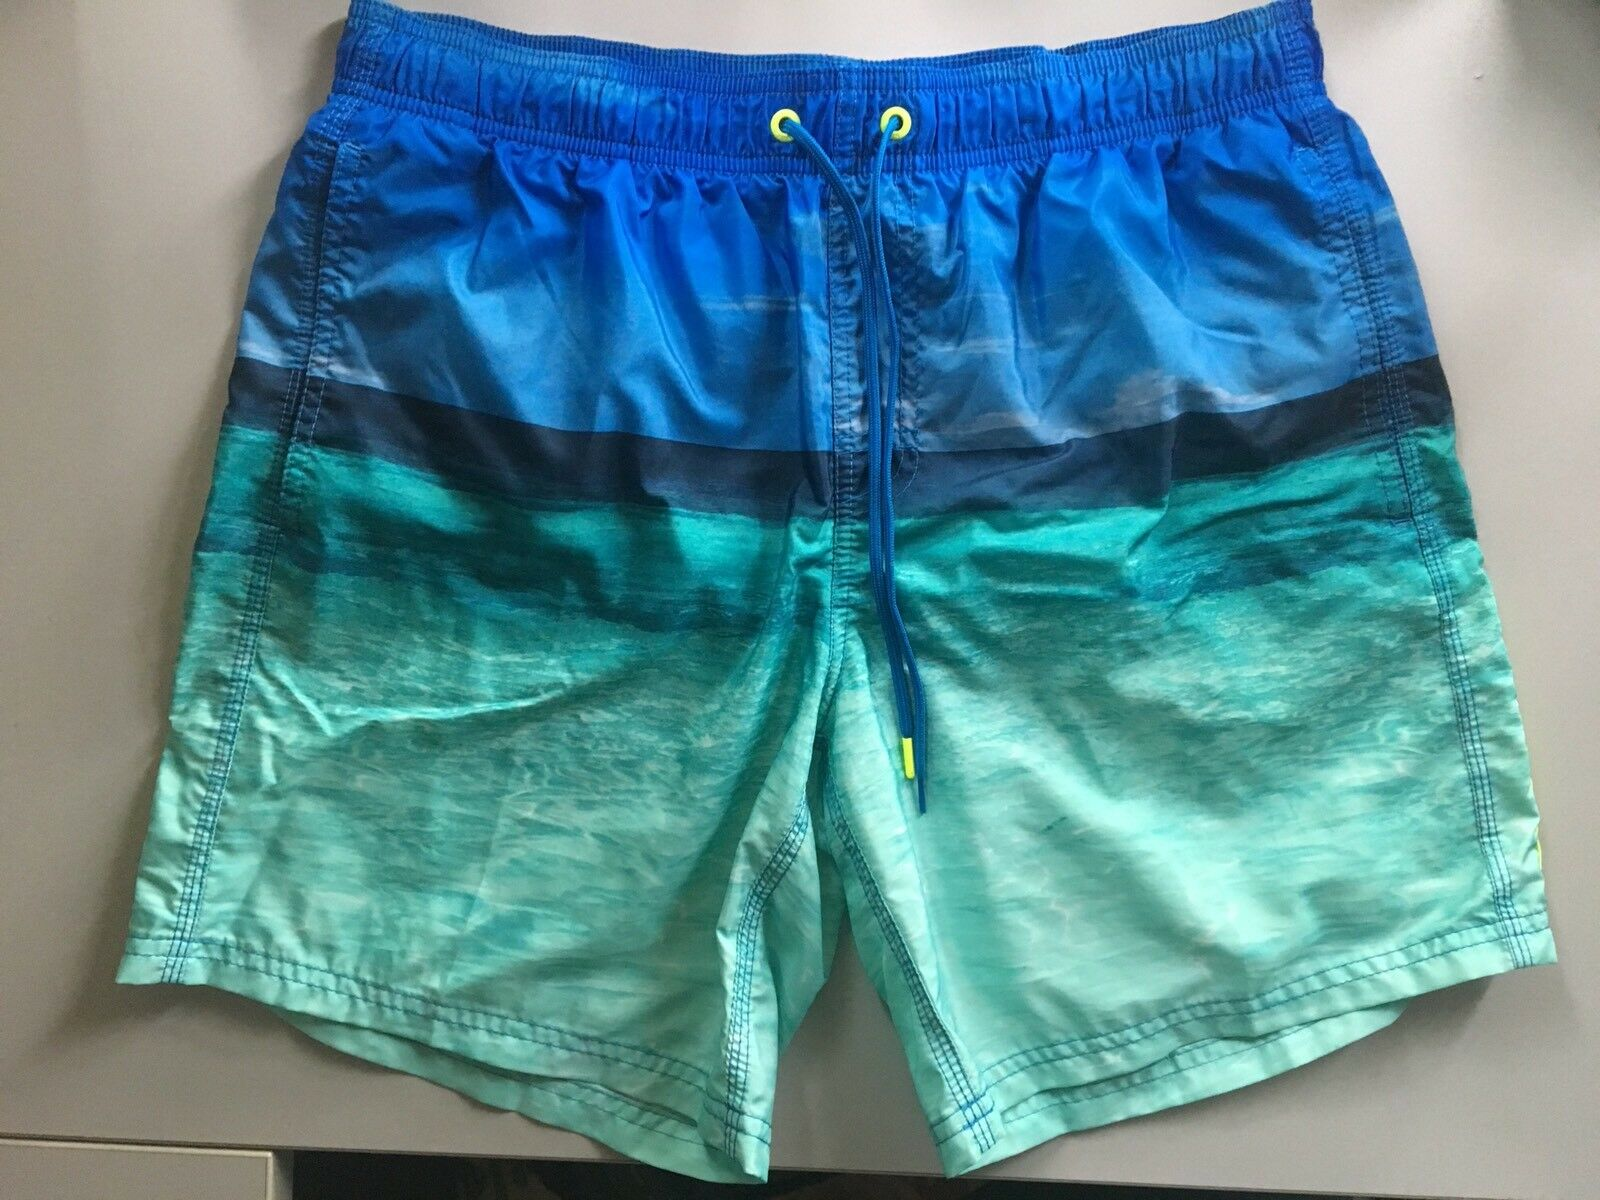 Costume Sundek Tg. L men  Mare Boardshort